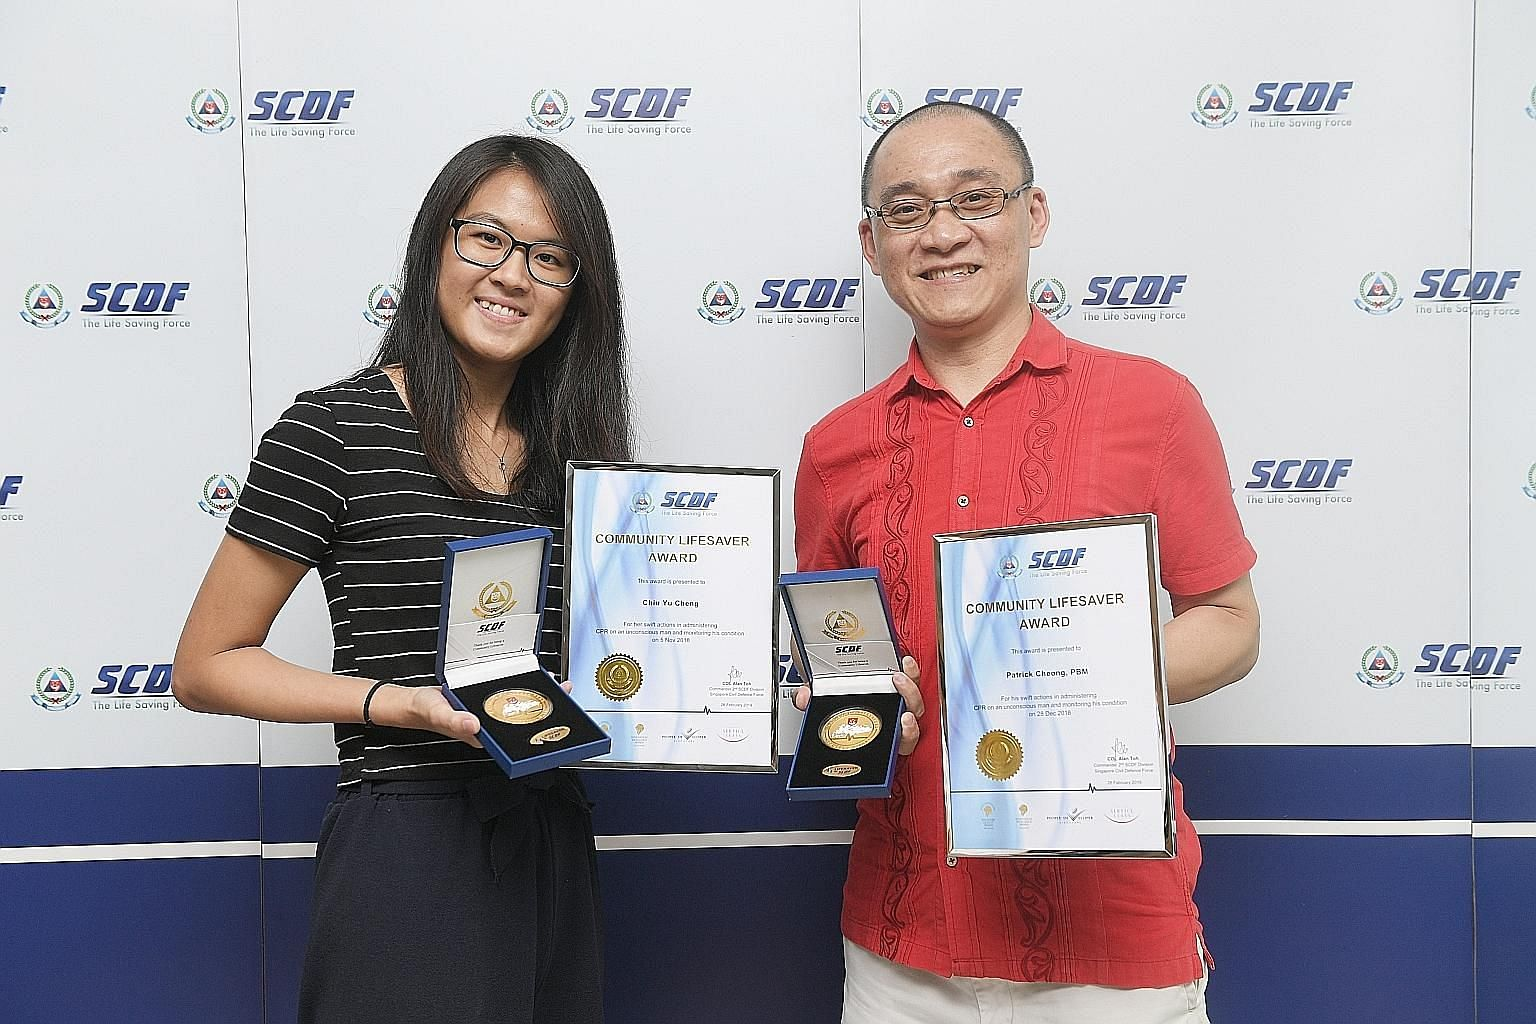 Ms Chiu Yu Cheng, 22, and Mr Patrick Cheong, 46, were awarded the Community Lifesaver Award by the Singapore Civil Defence Force yesterday for saving the lives of two people in separate incidents using cardiopulmonary resuscitation. They are register